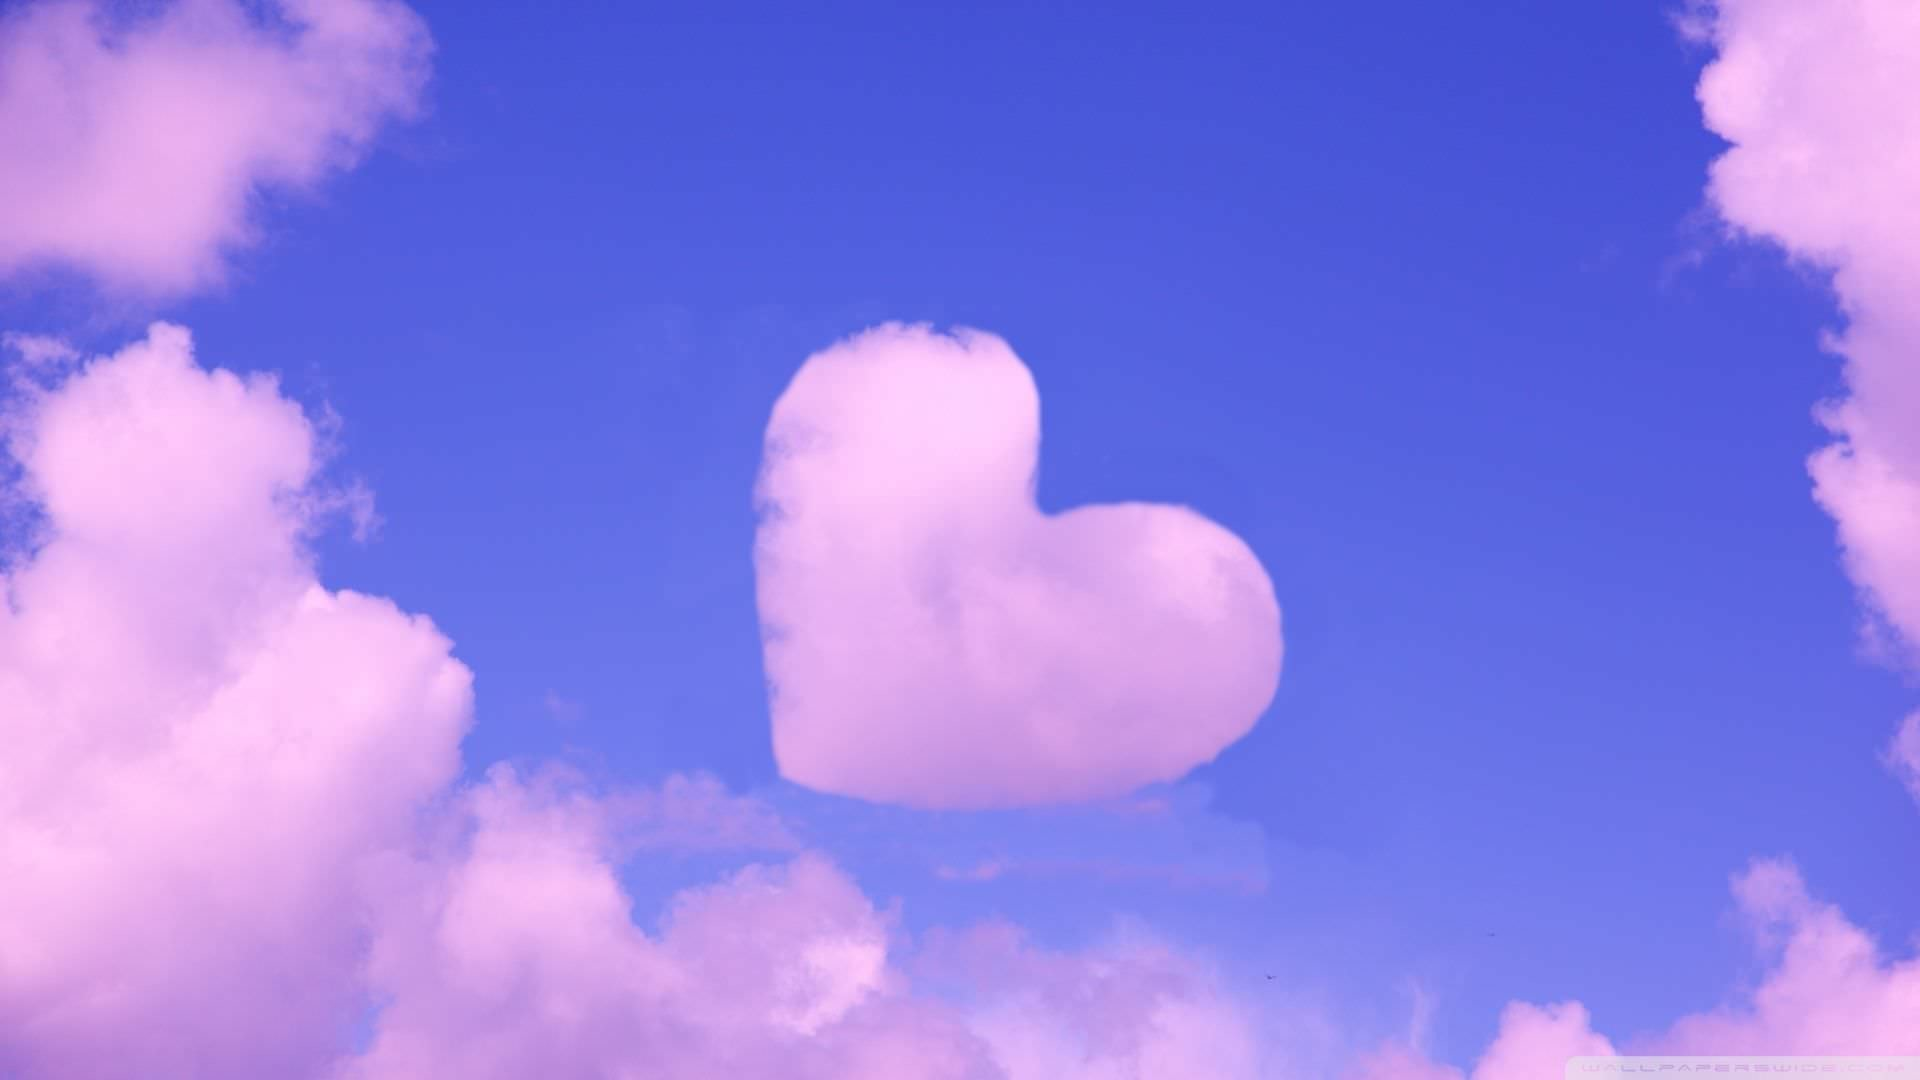 1920x1080 Pink Heart in Sky Background